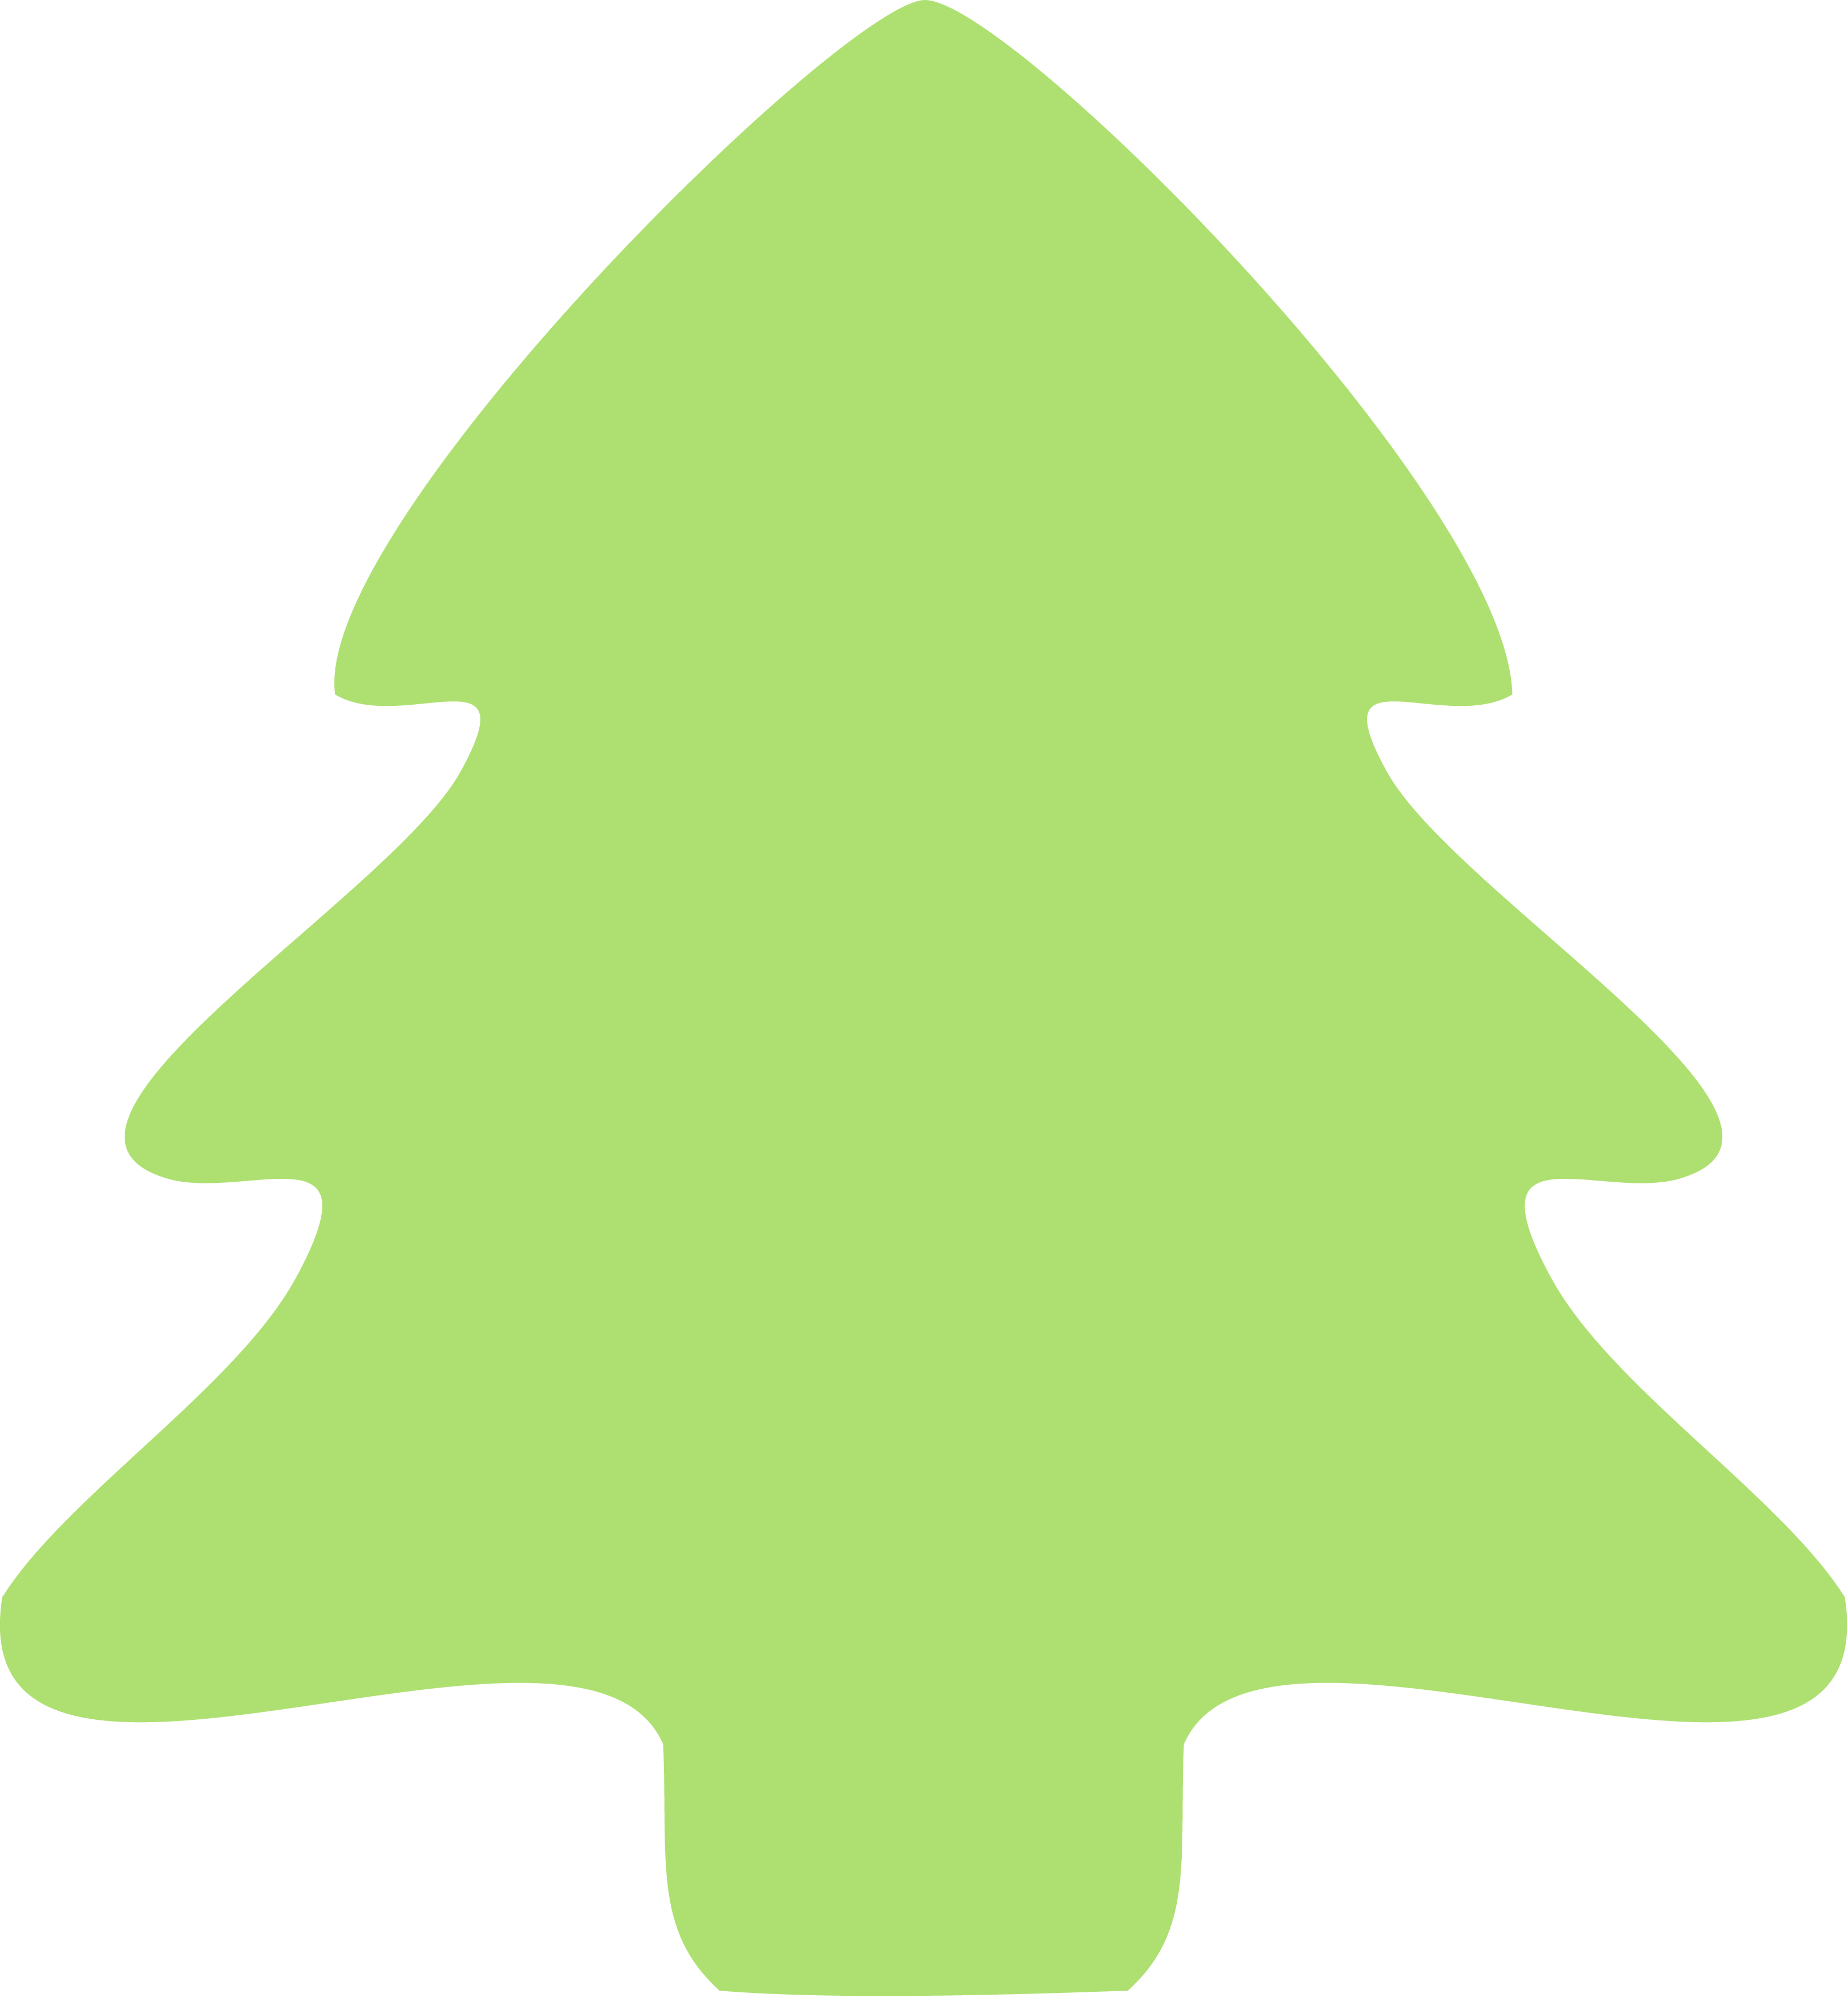 Library Christmas Tree Icon image #23770